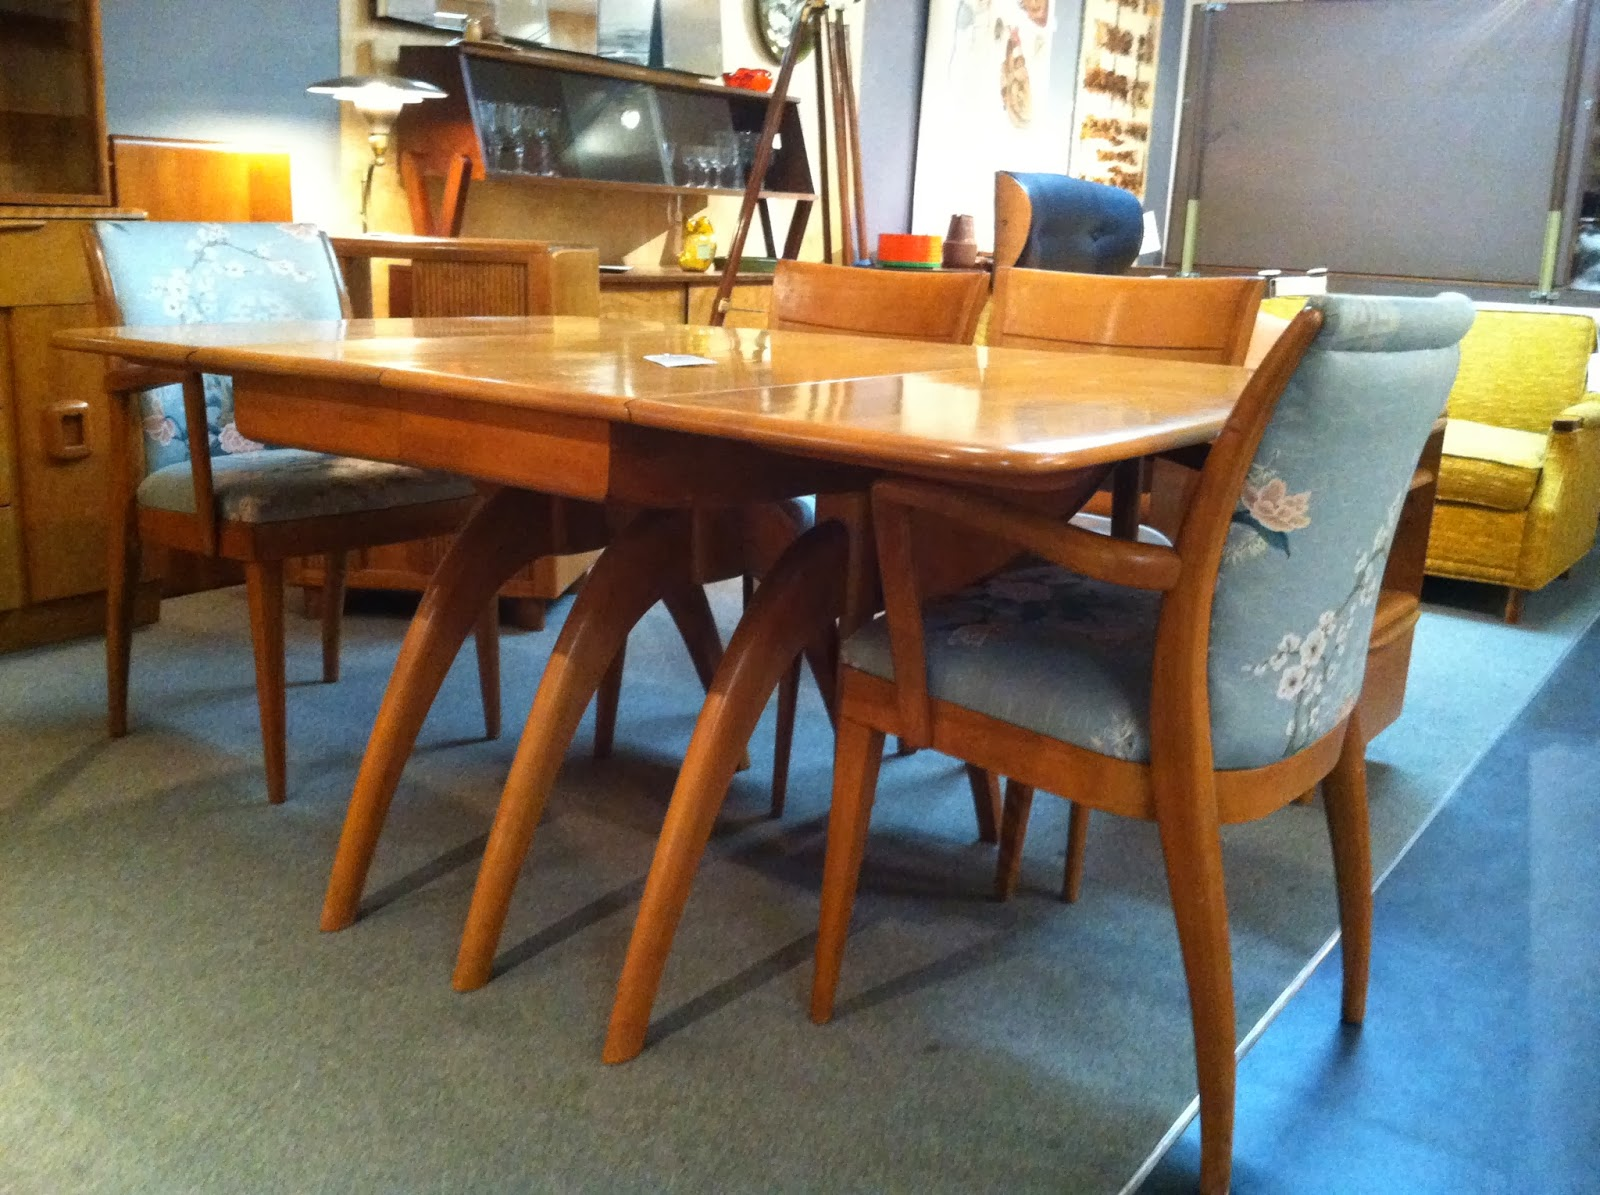 heywood wakefield dining table and chairs